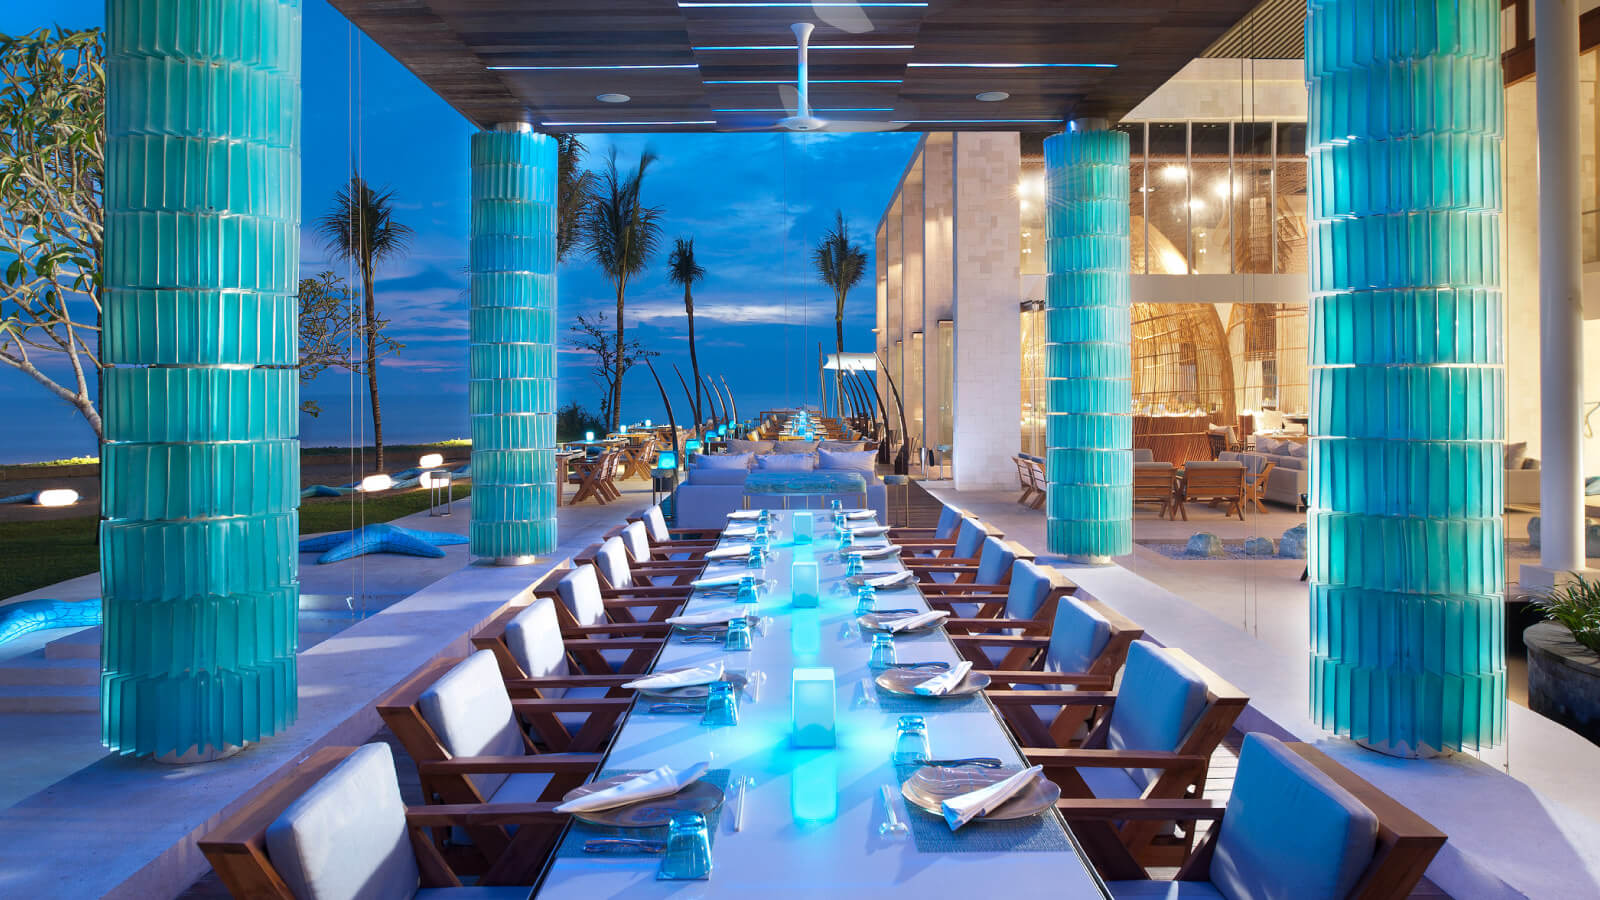 Get Boozy at W Bali Sunday Brunch